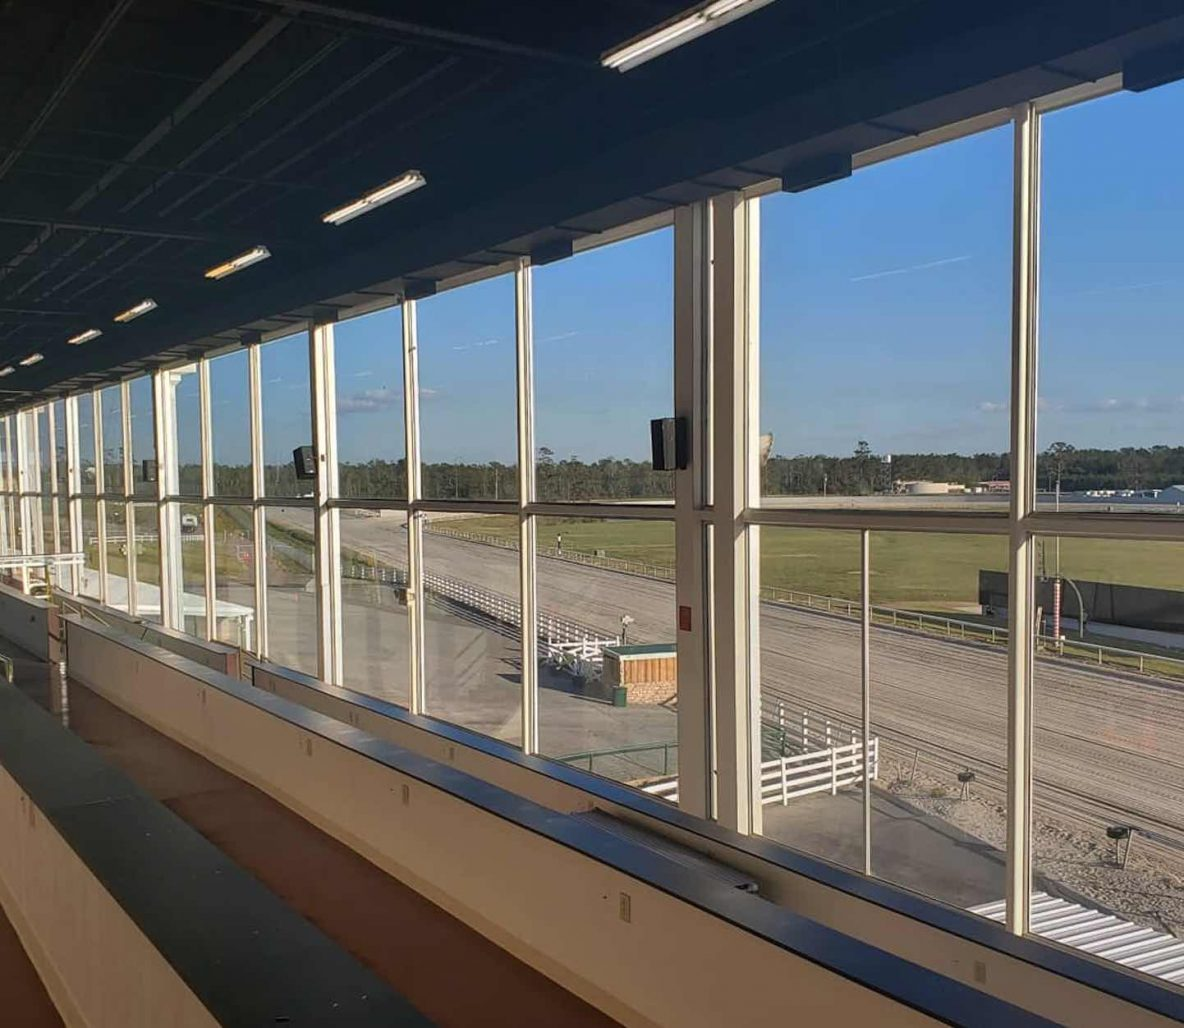 We Help Delta Downs Improve Safety With Security Window Film - Safety and Security Window Films in Lake Charles and New Orleans, Louisiana